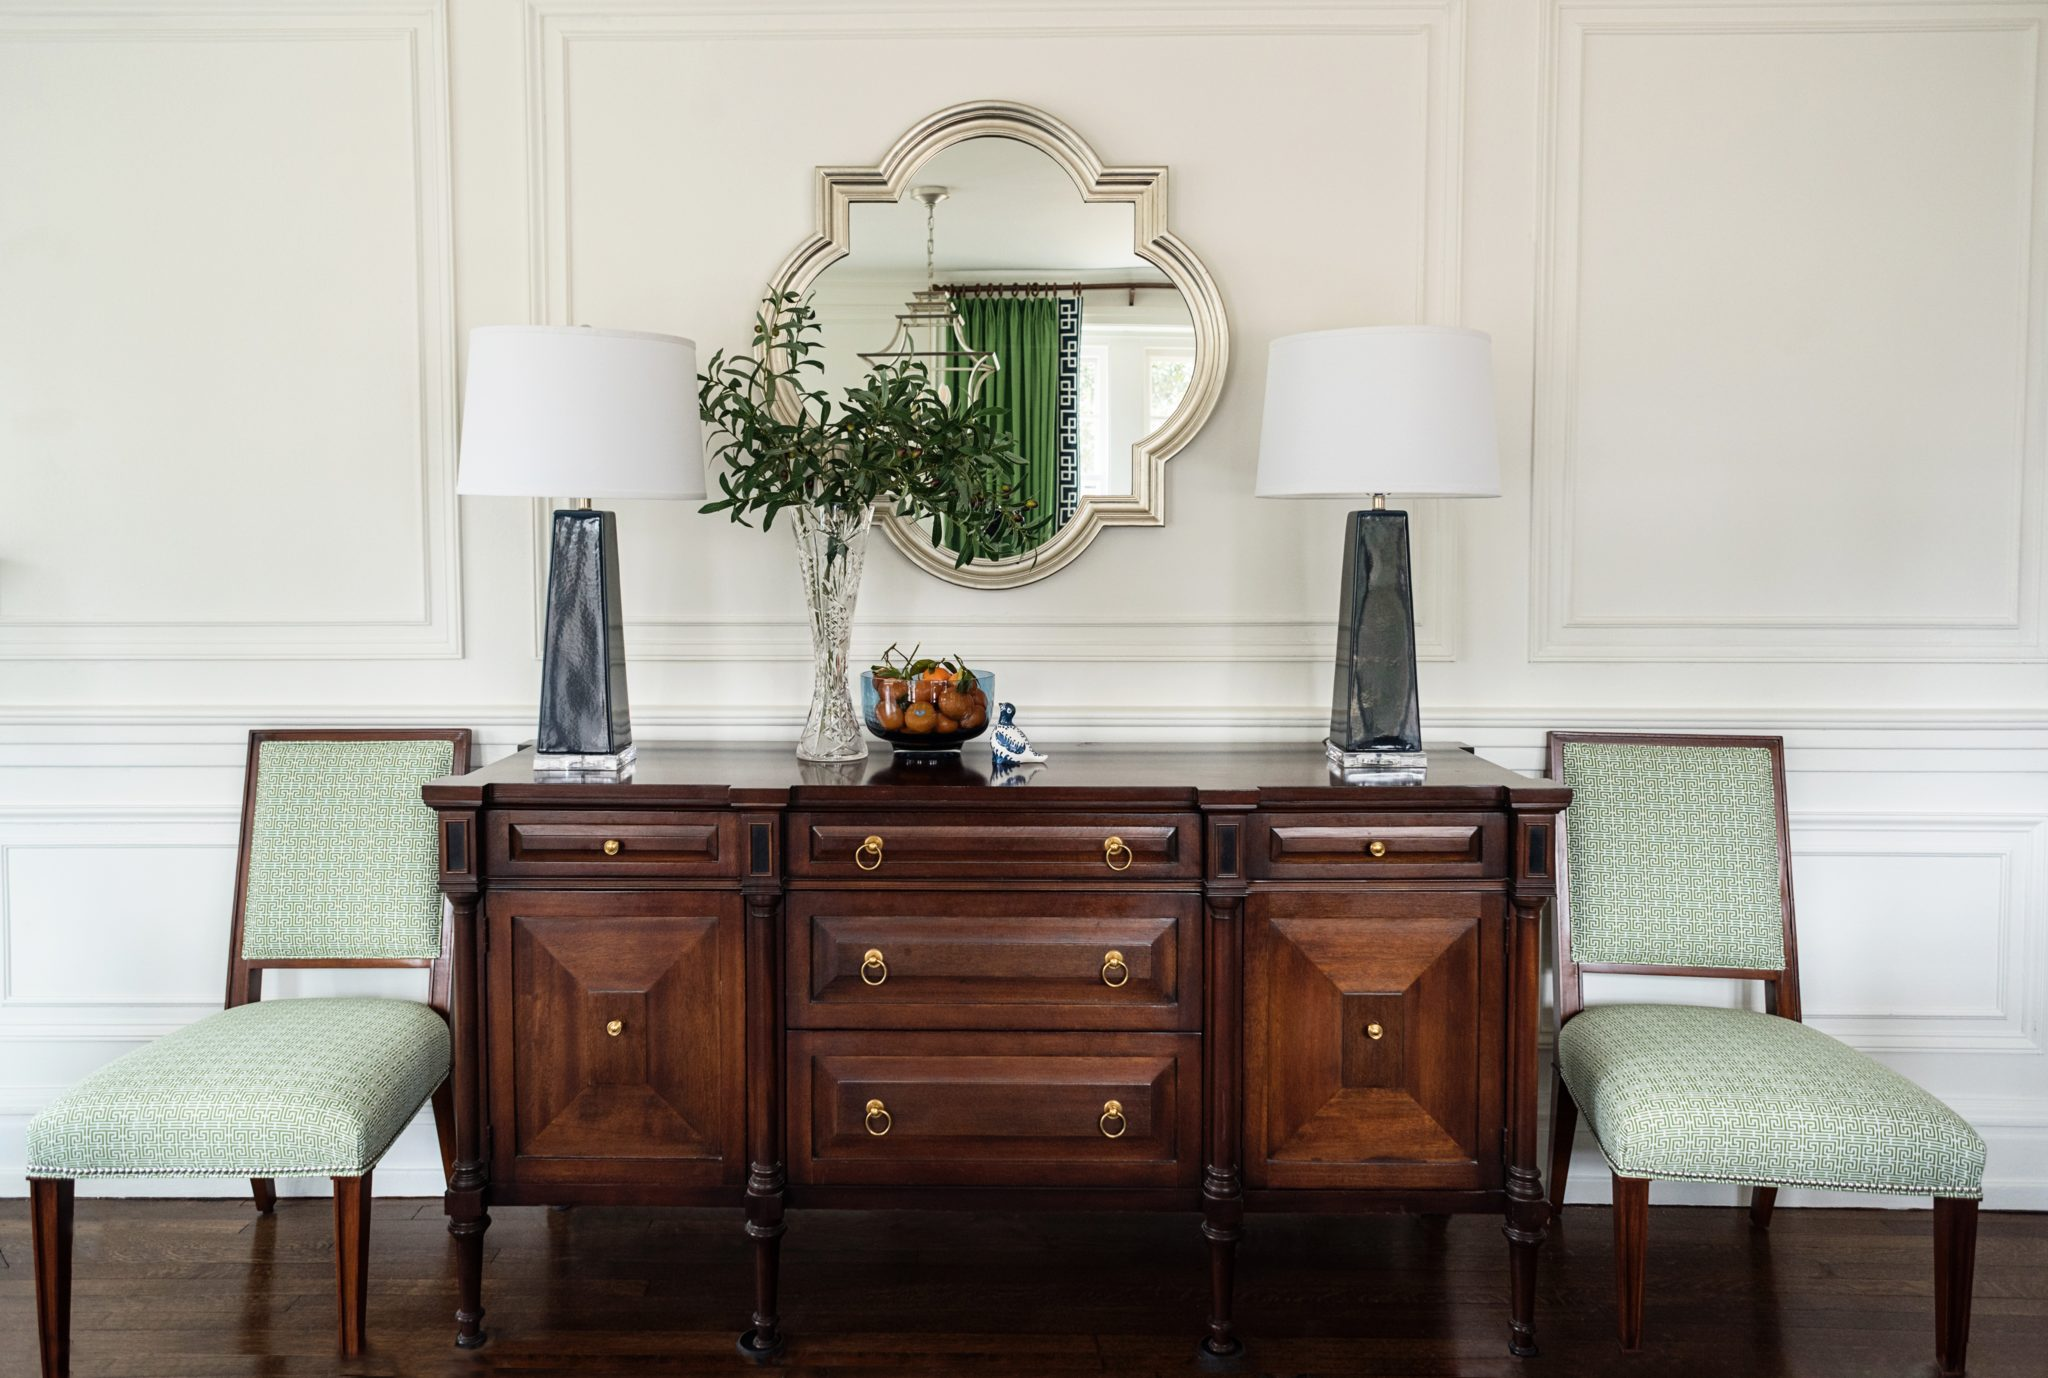 Traditional Dining Room Buffett in a Historic Home by Michele Plachter Design